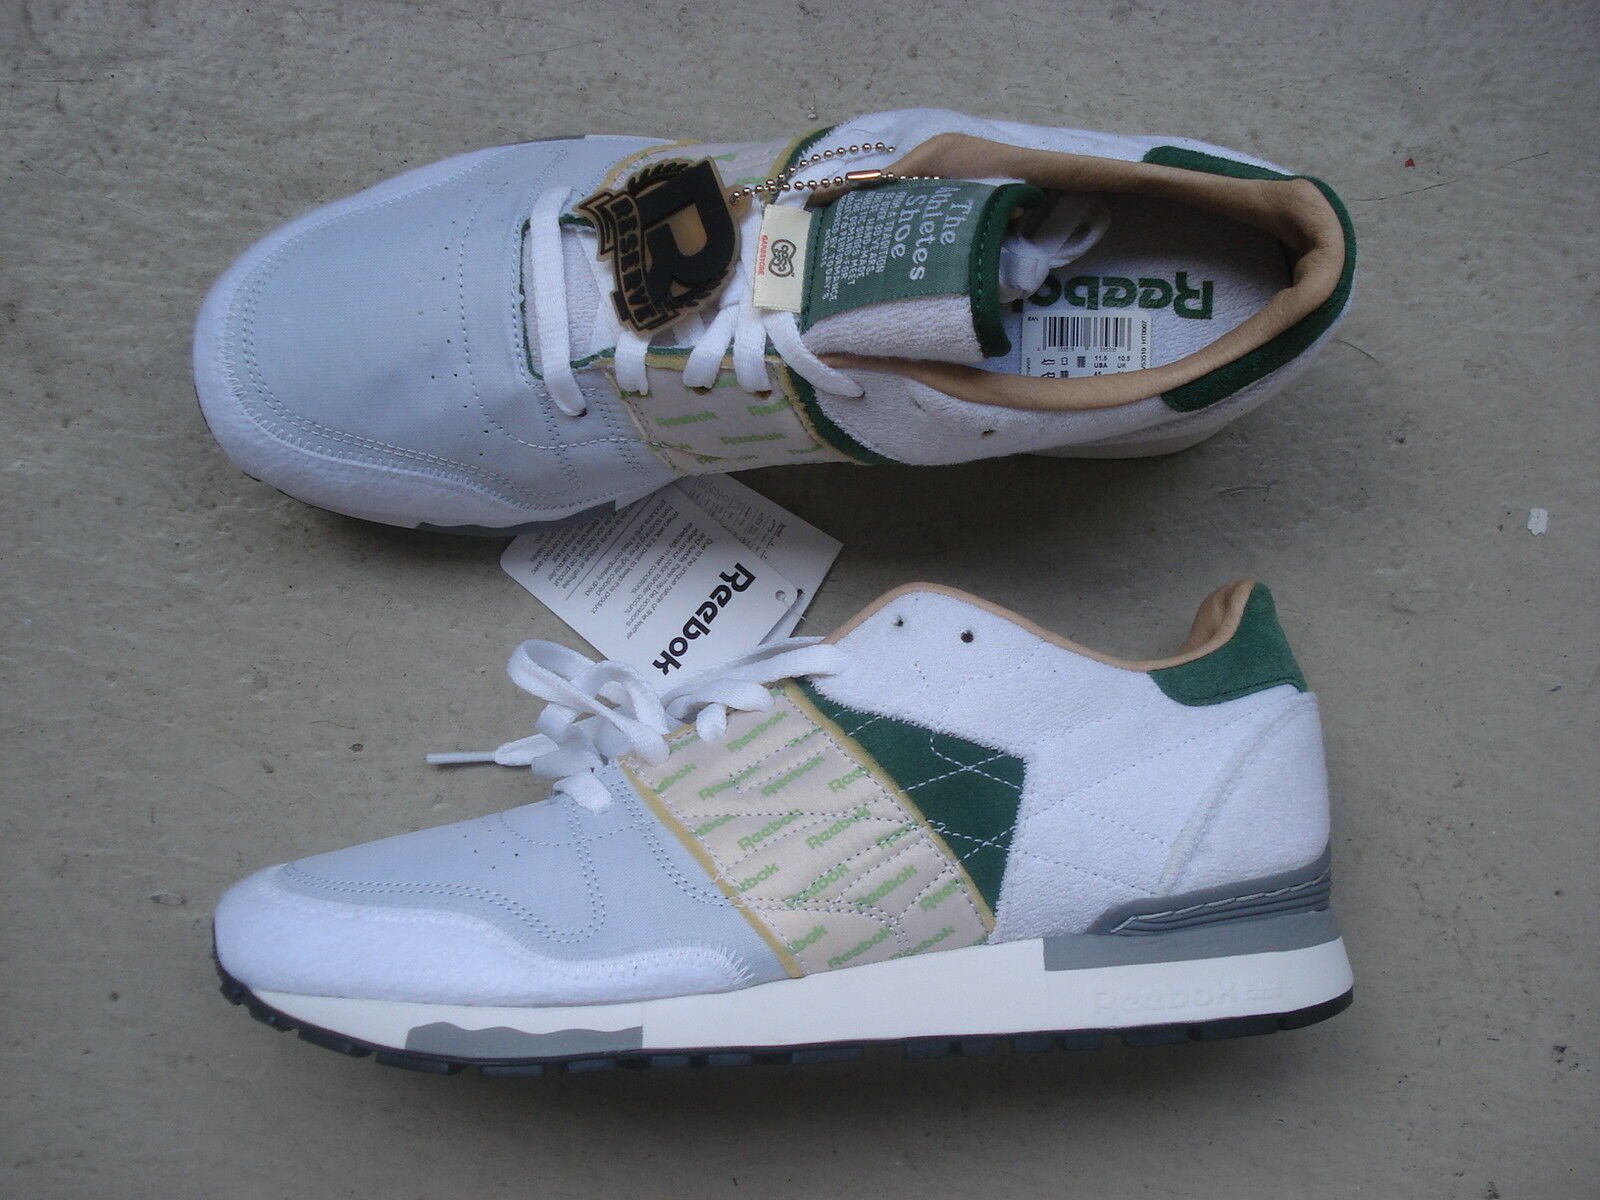 Garbstore X Reebok CL 6000 45 White Green Chalk